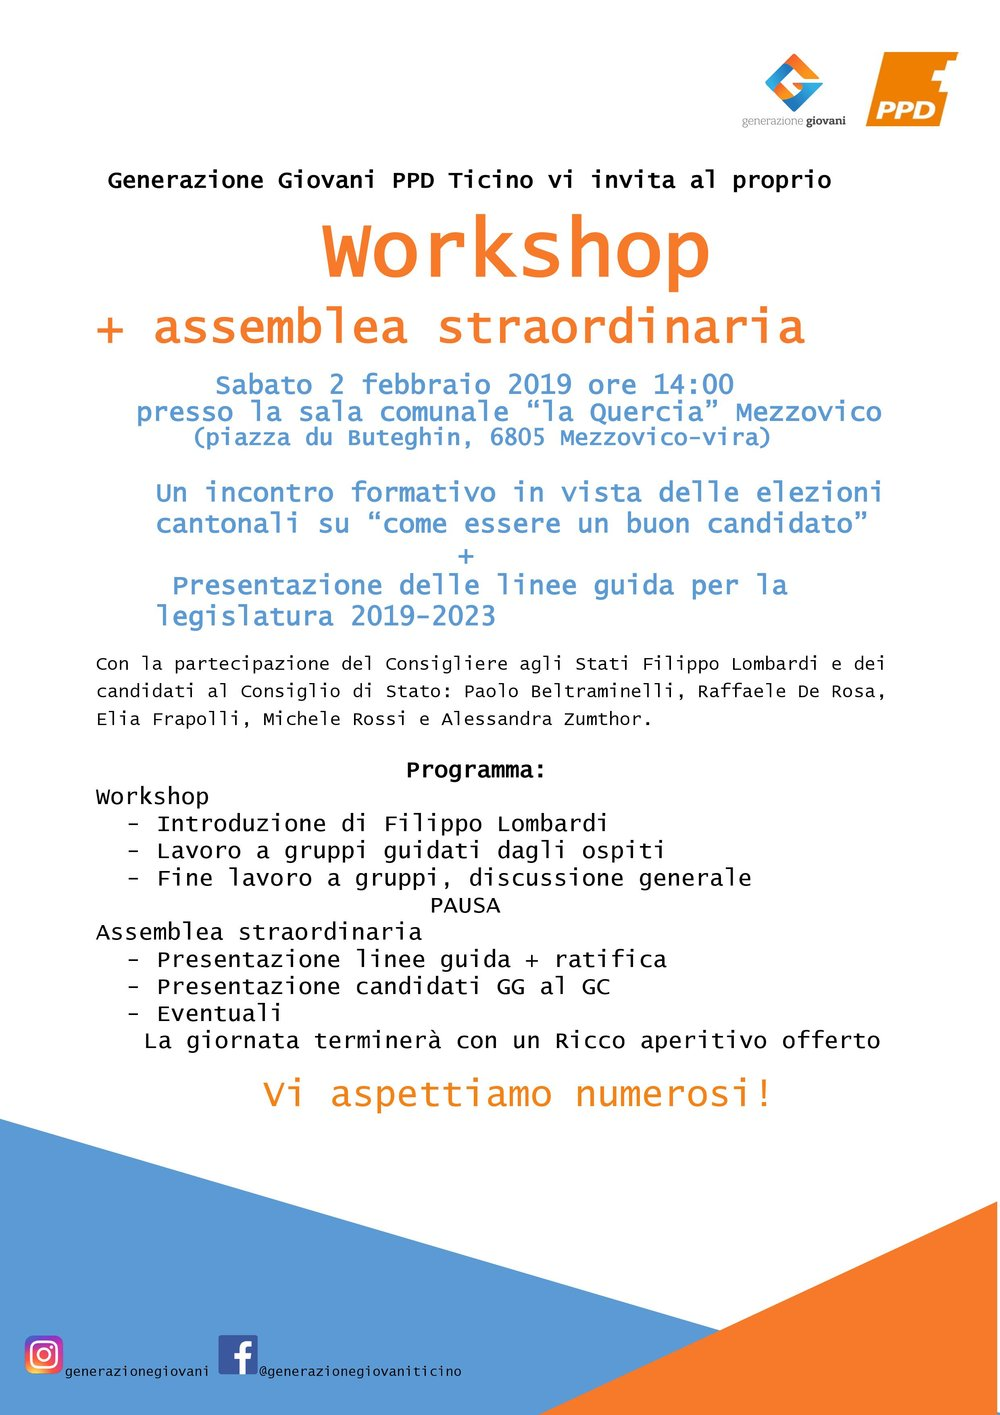 Invito_workshop_2.1.19-1.jpg